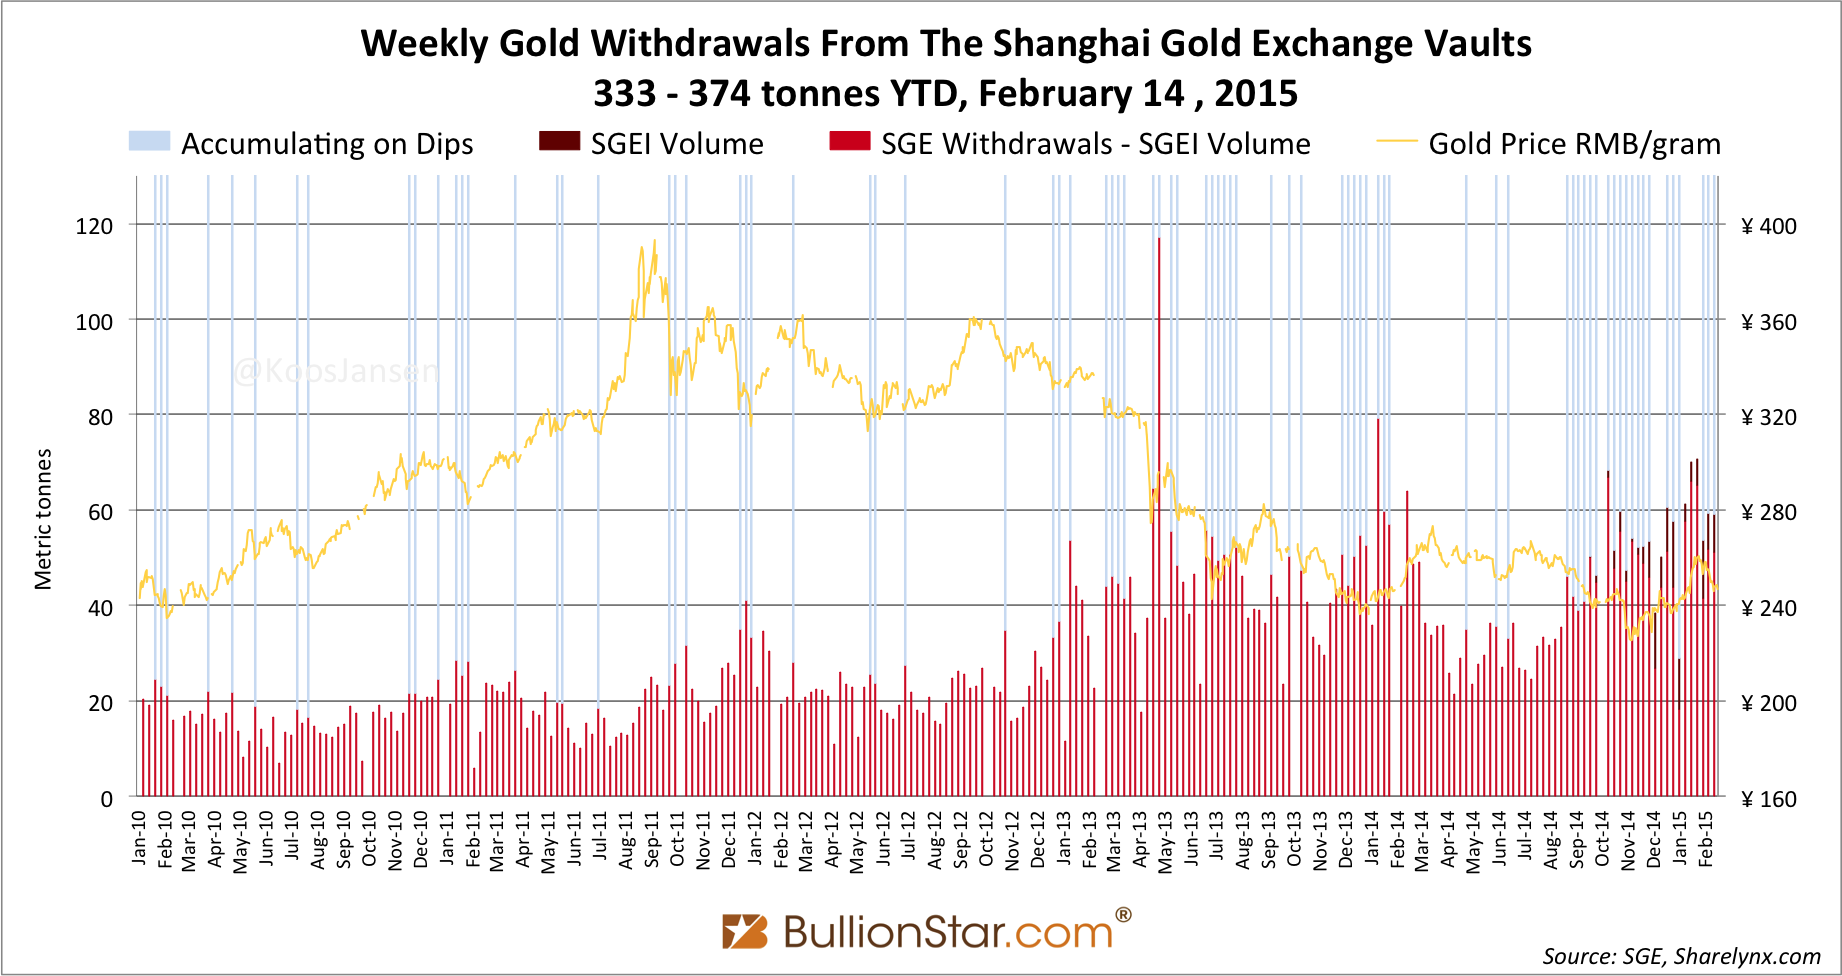 SGE Withdrawals 59t in week 6, YTD 374t: Chinese Gold Soap Extended Another Season